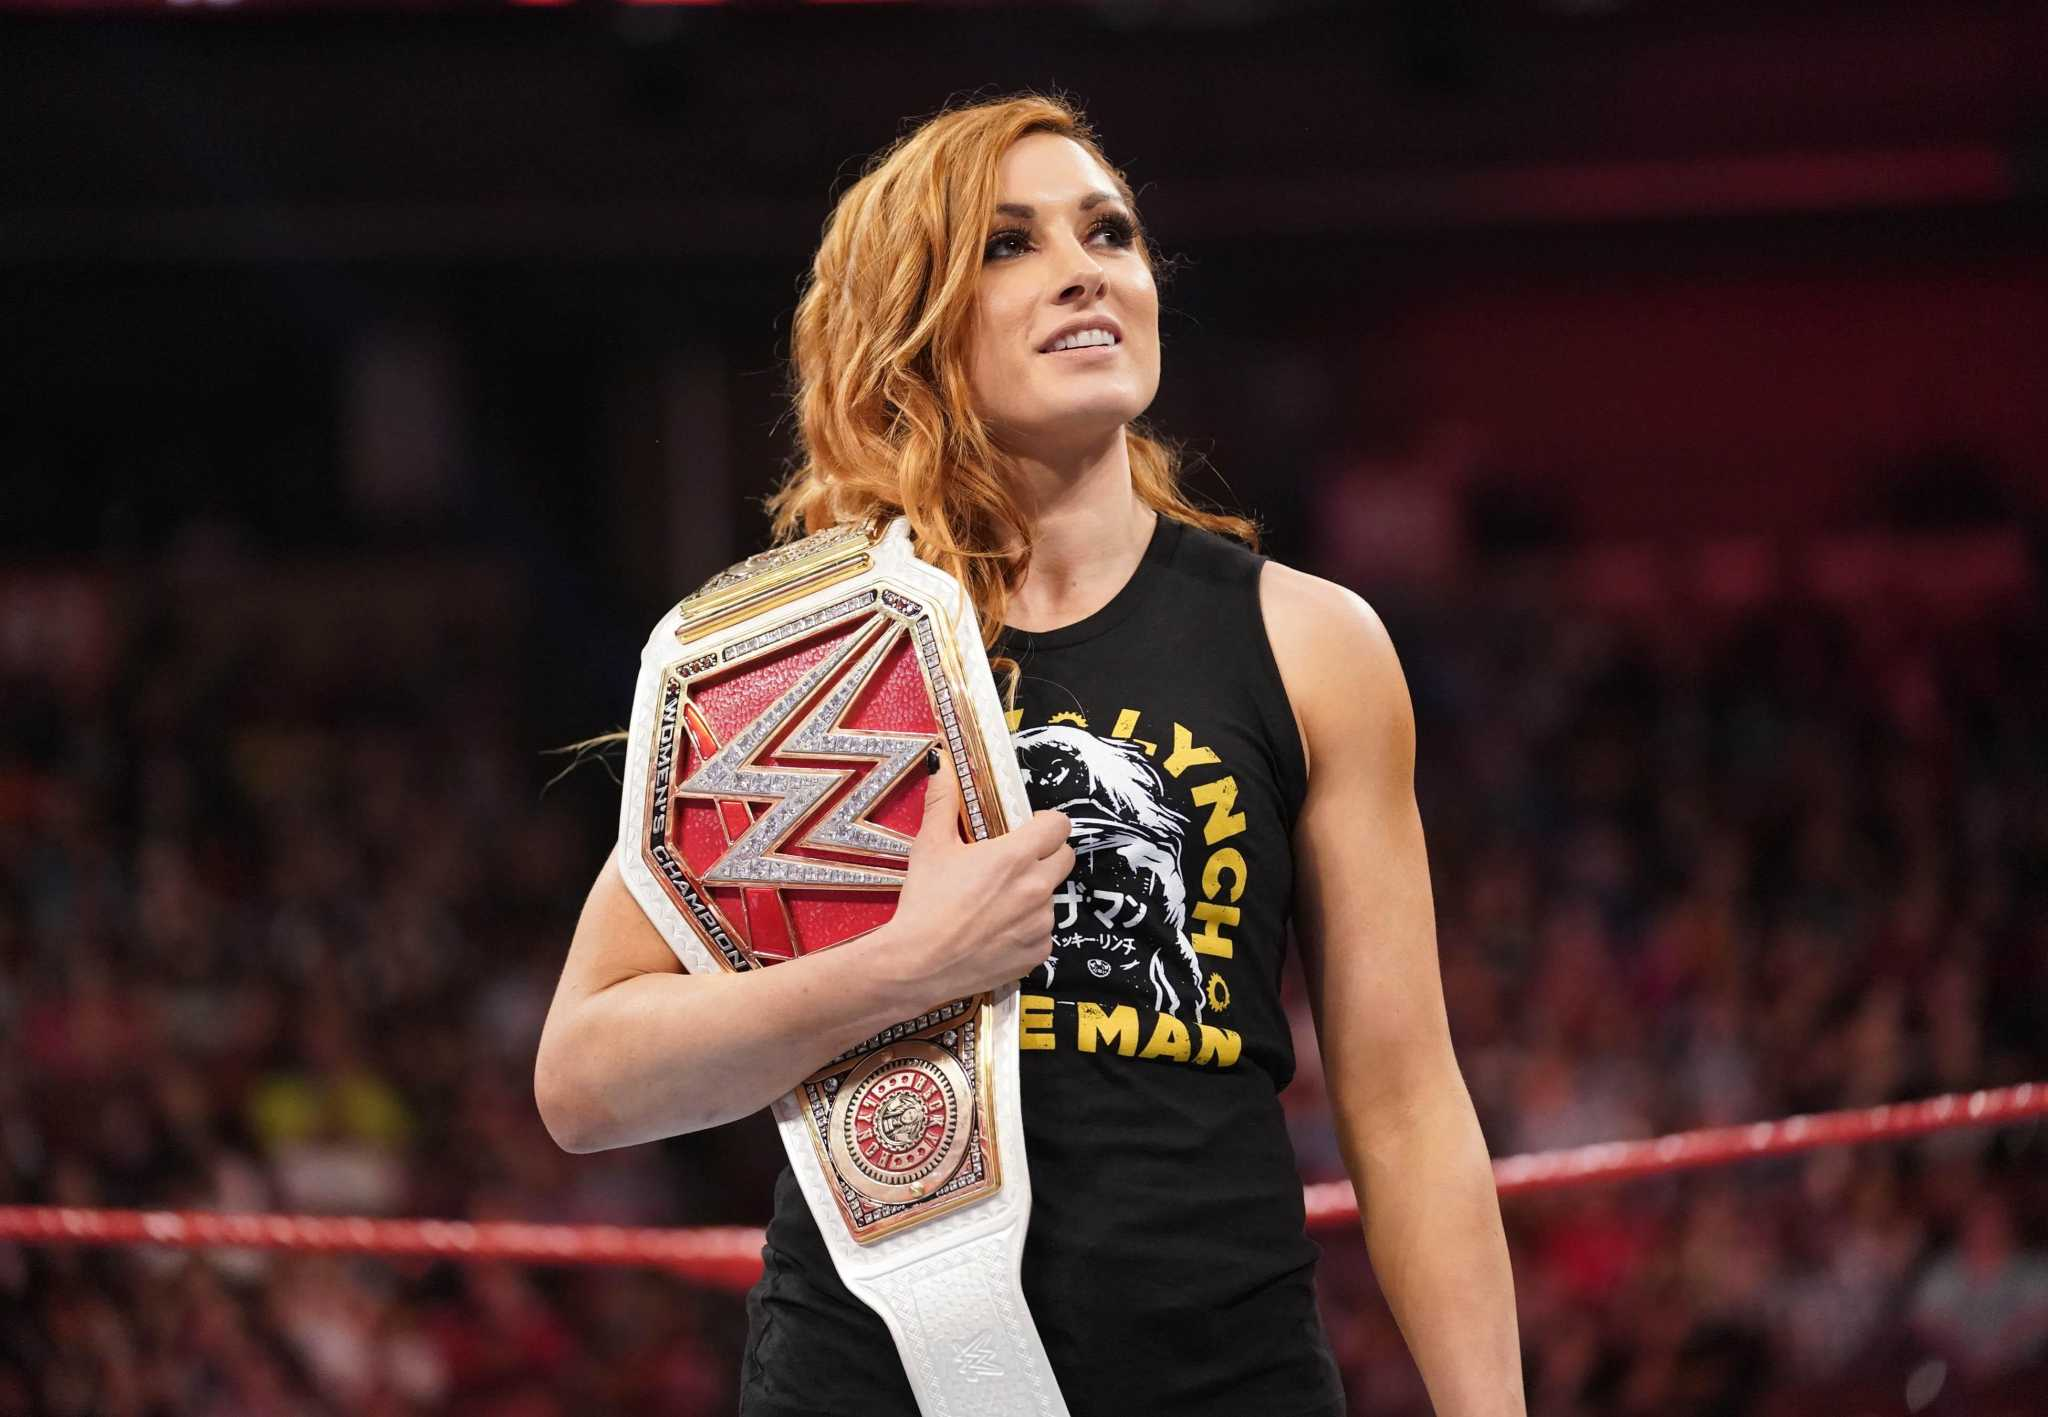 Wwe Star Becky Lynch Slams Into San Antonio For Celebrity